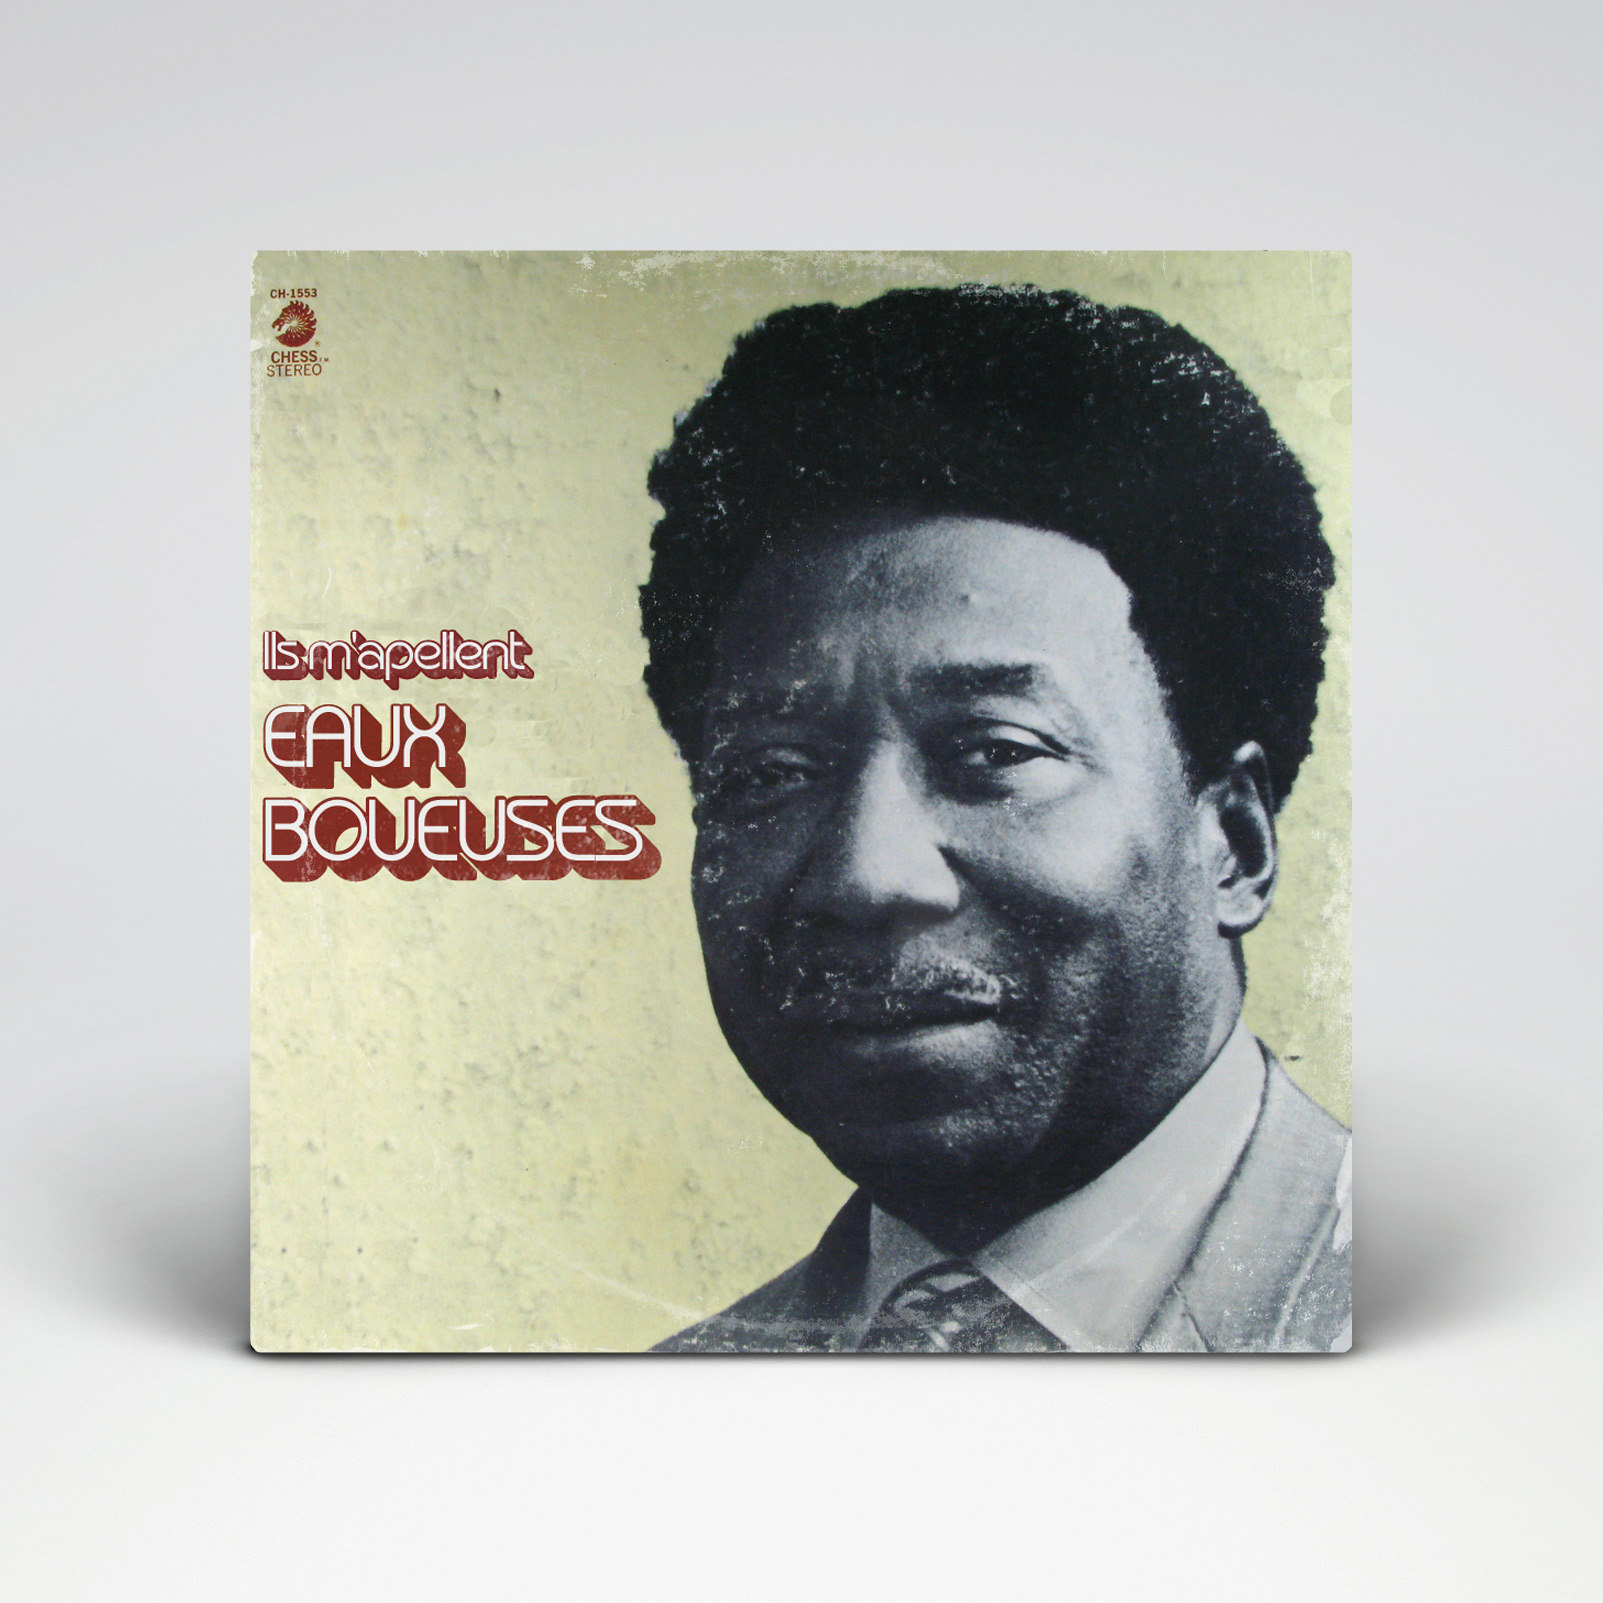 Muddy Waters - They Call Me Muddy Waters (1970)